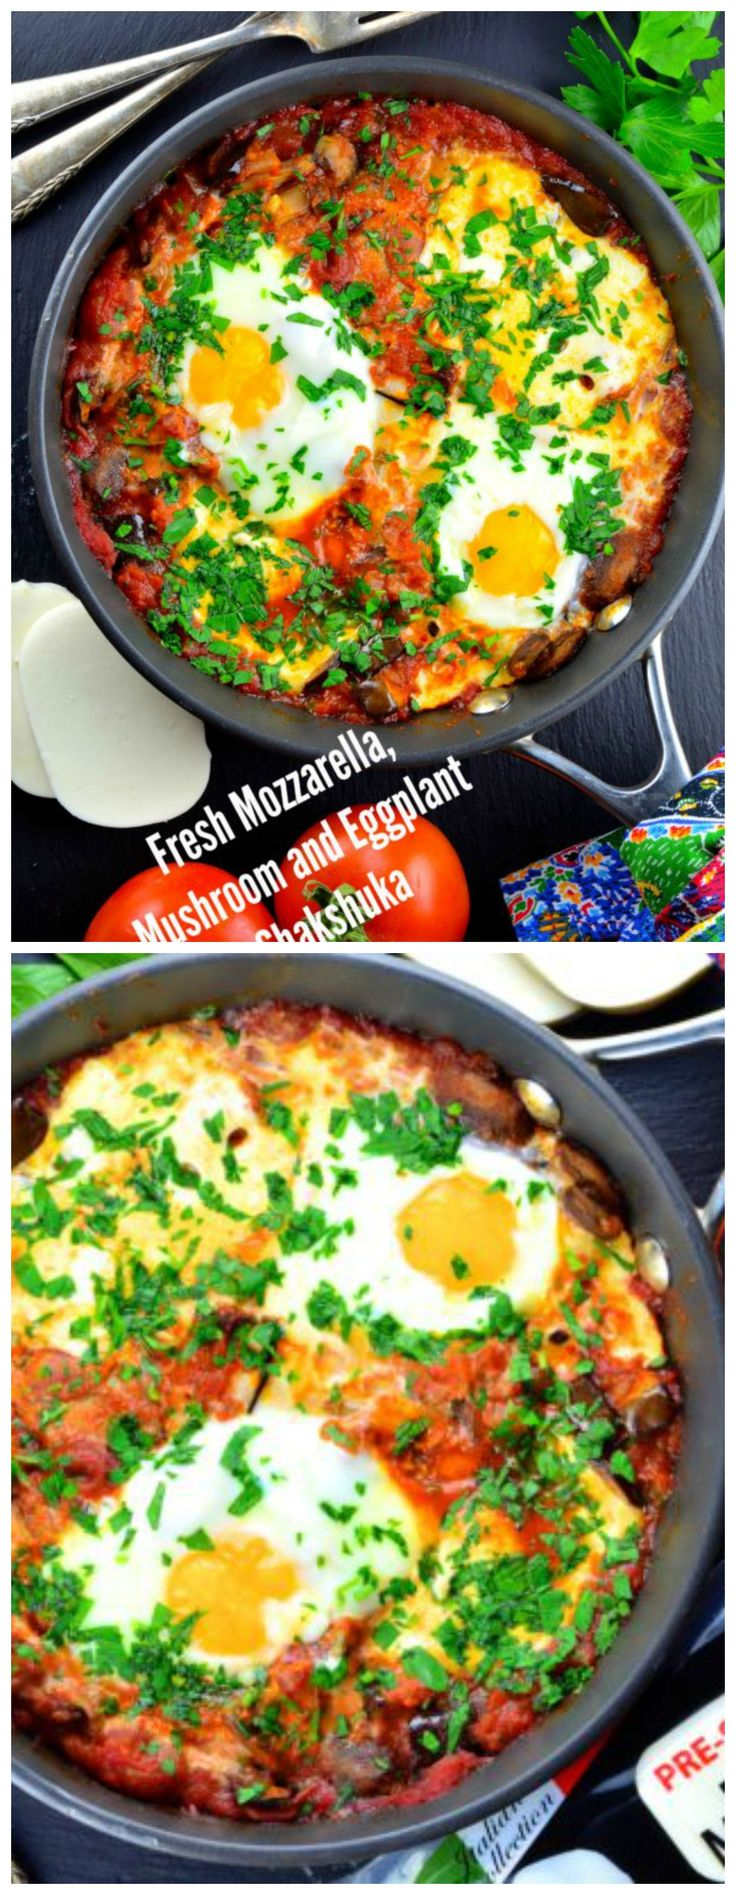 Fresh Mozzarella, Mushroom and Eggplant Shakshuka . Great vegetarian breakfast recipe for Passover and all year long. Awesome for dinner too!